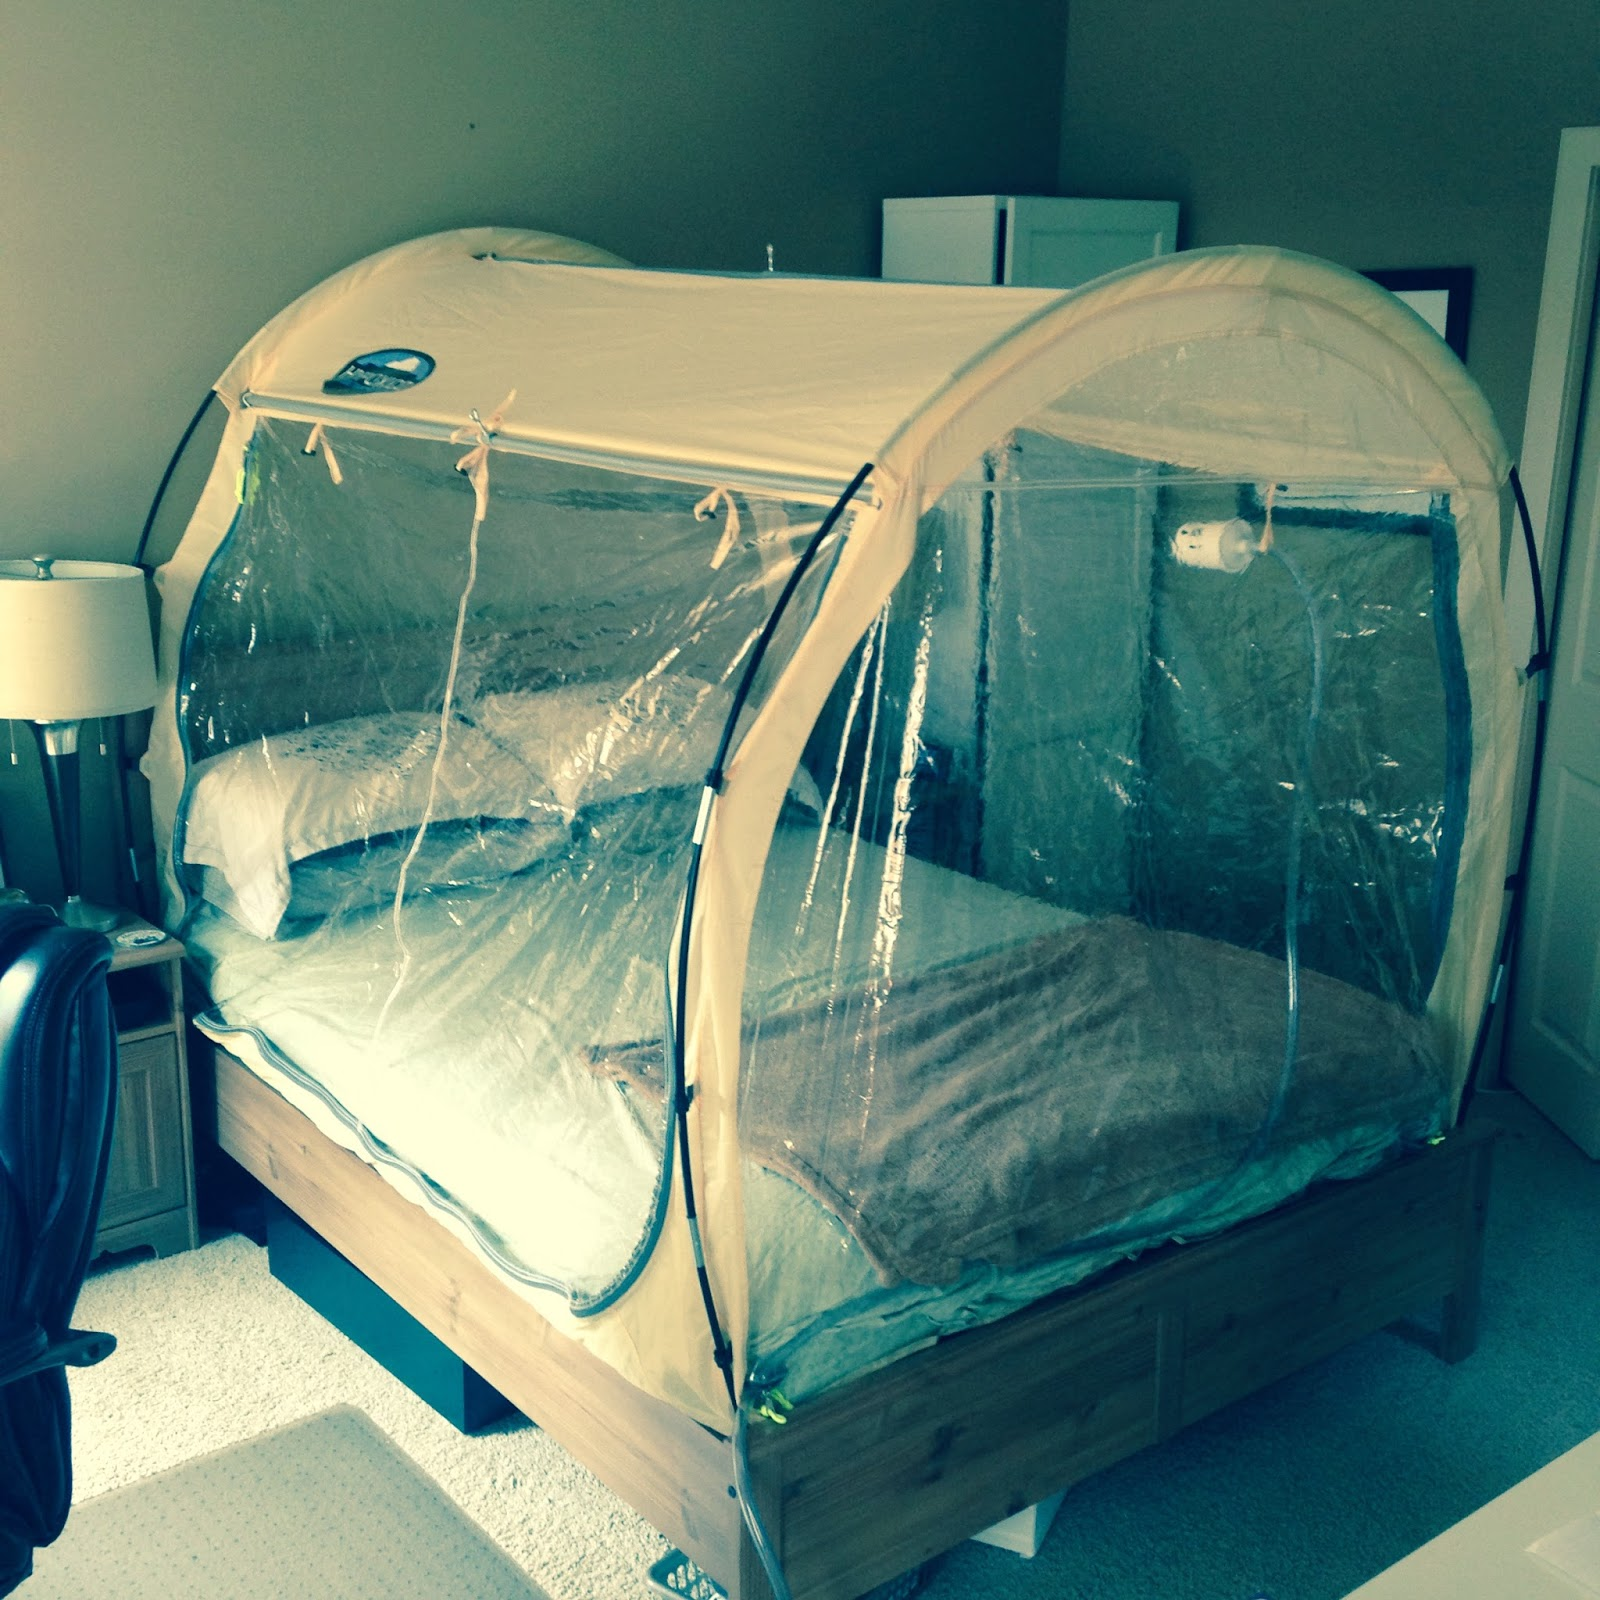 Sleeping in a Hypoxico tent the past month getting acclimated ...sorry Sharon & RunProctor: Pre Run Rabbit Run